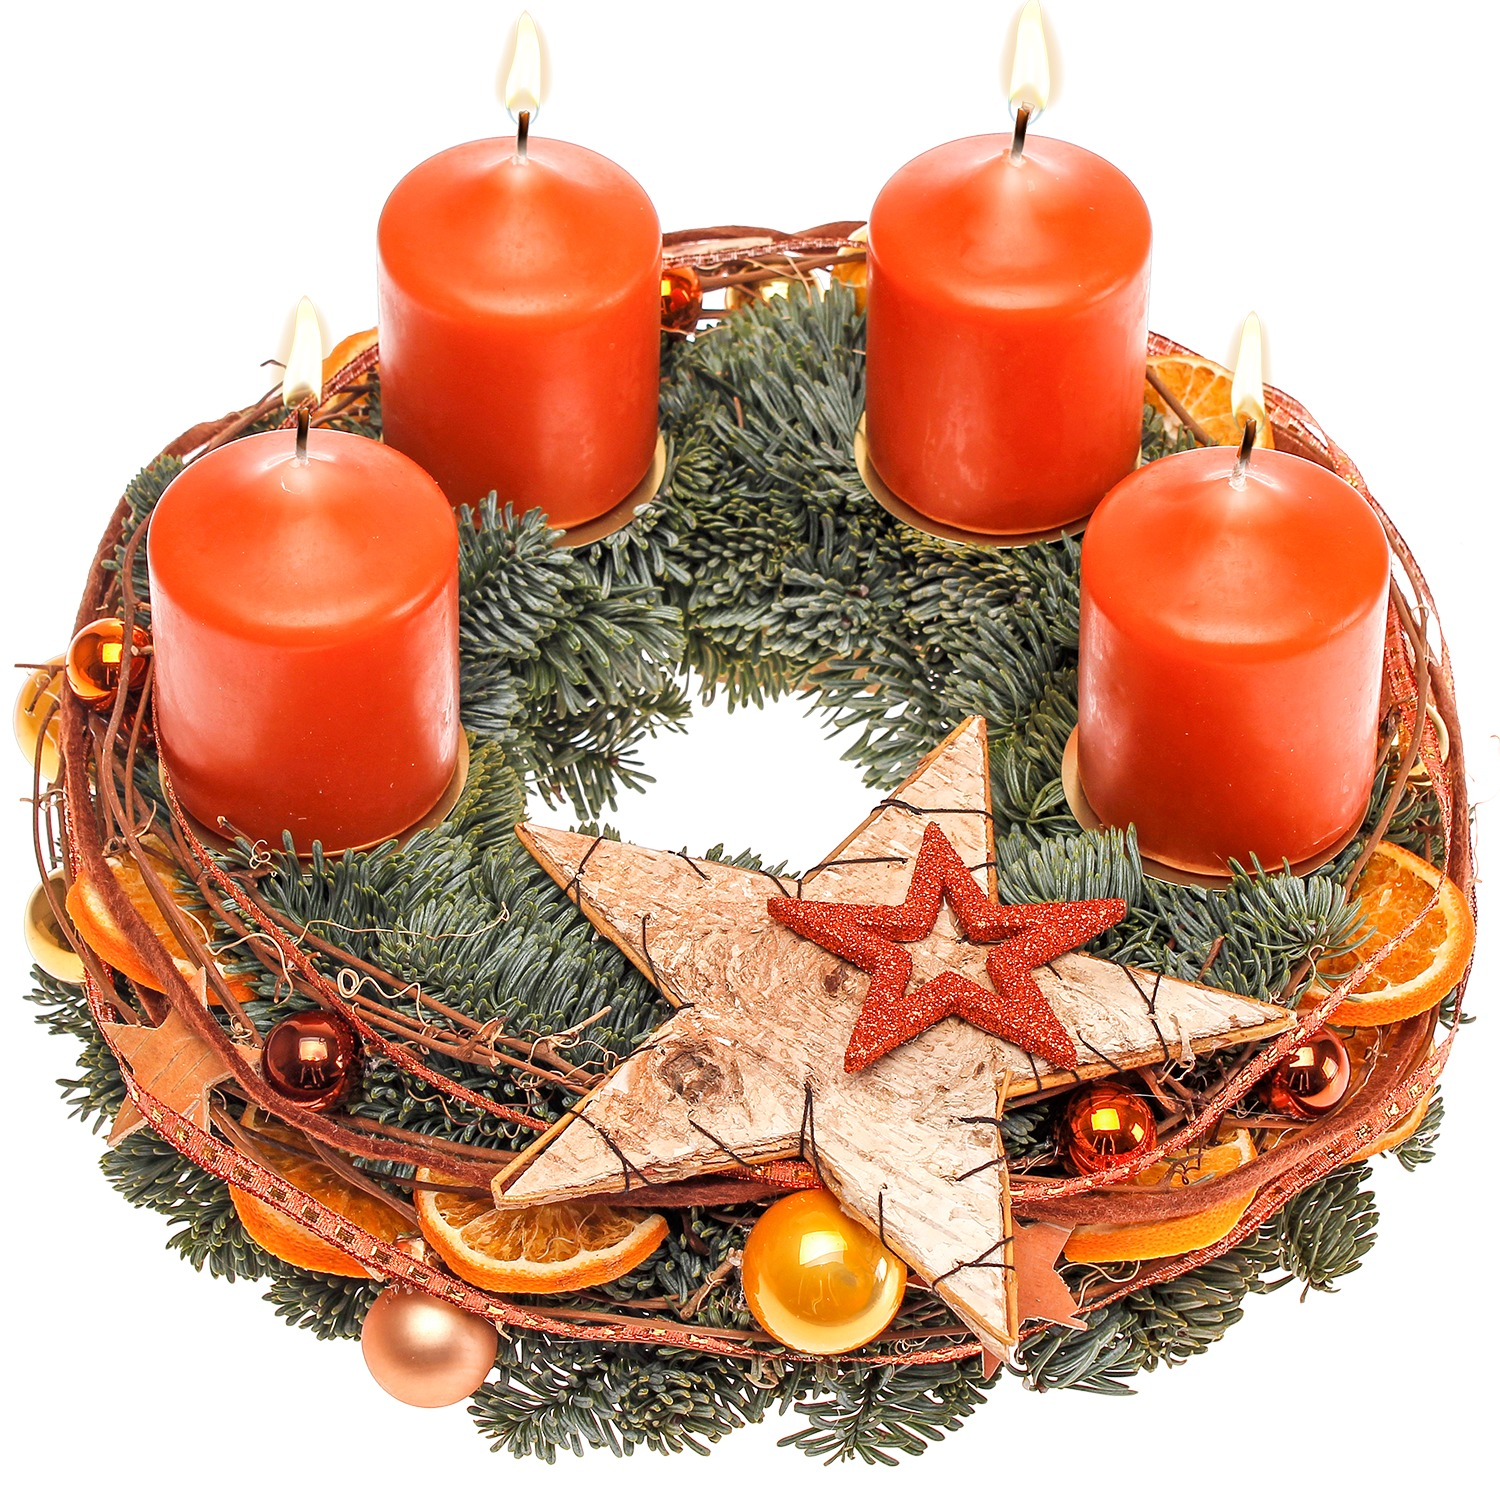 Adventskranz orange